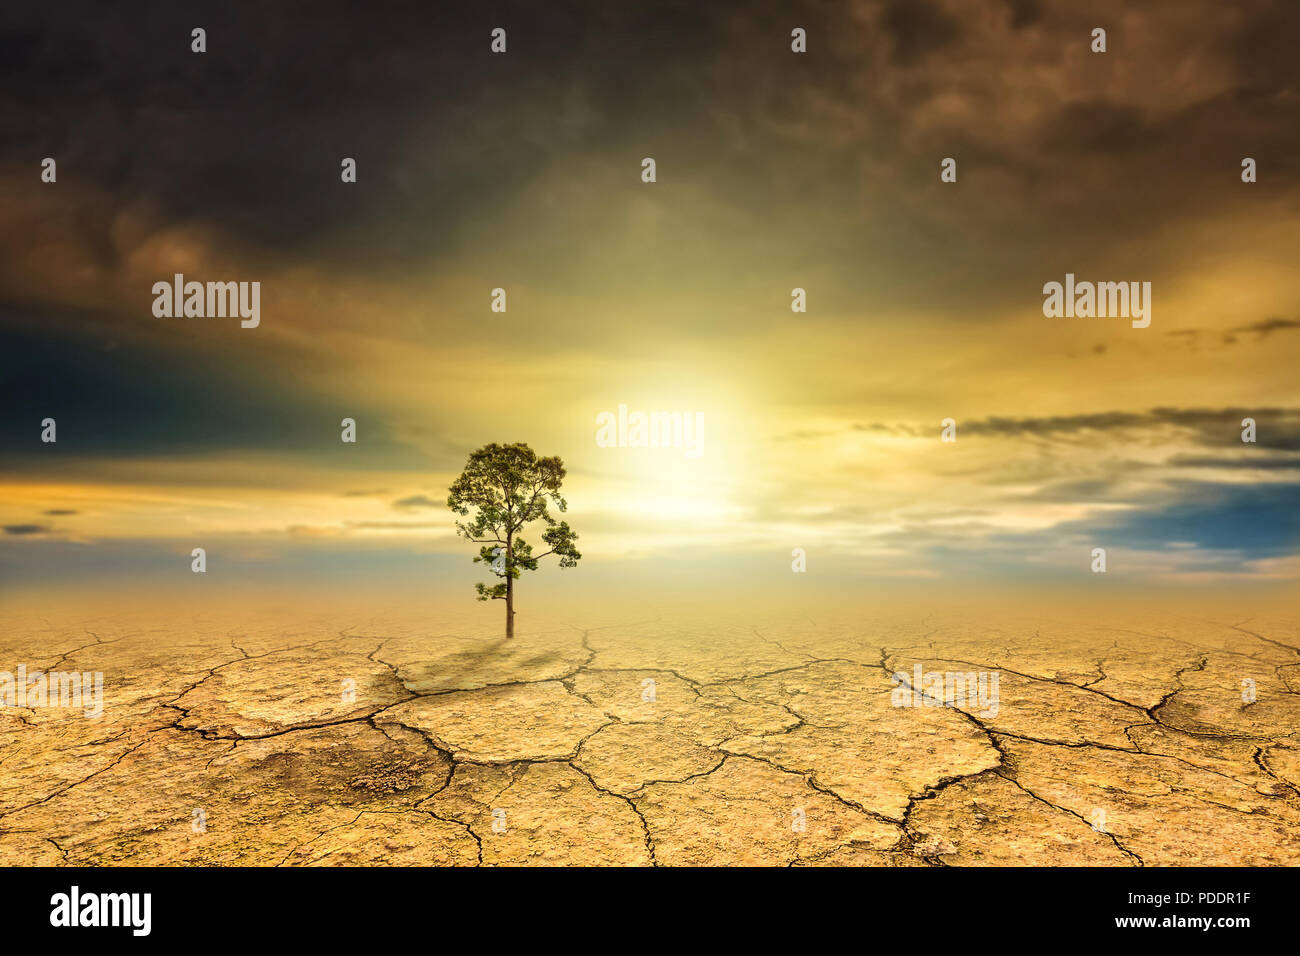 Tree dry soil texture background - Stock Image